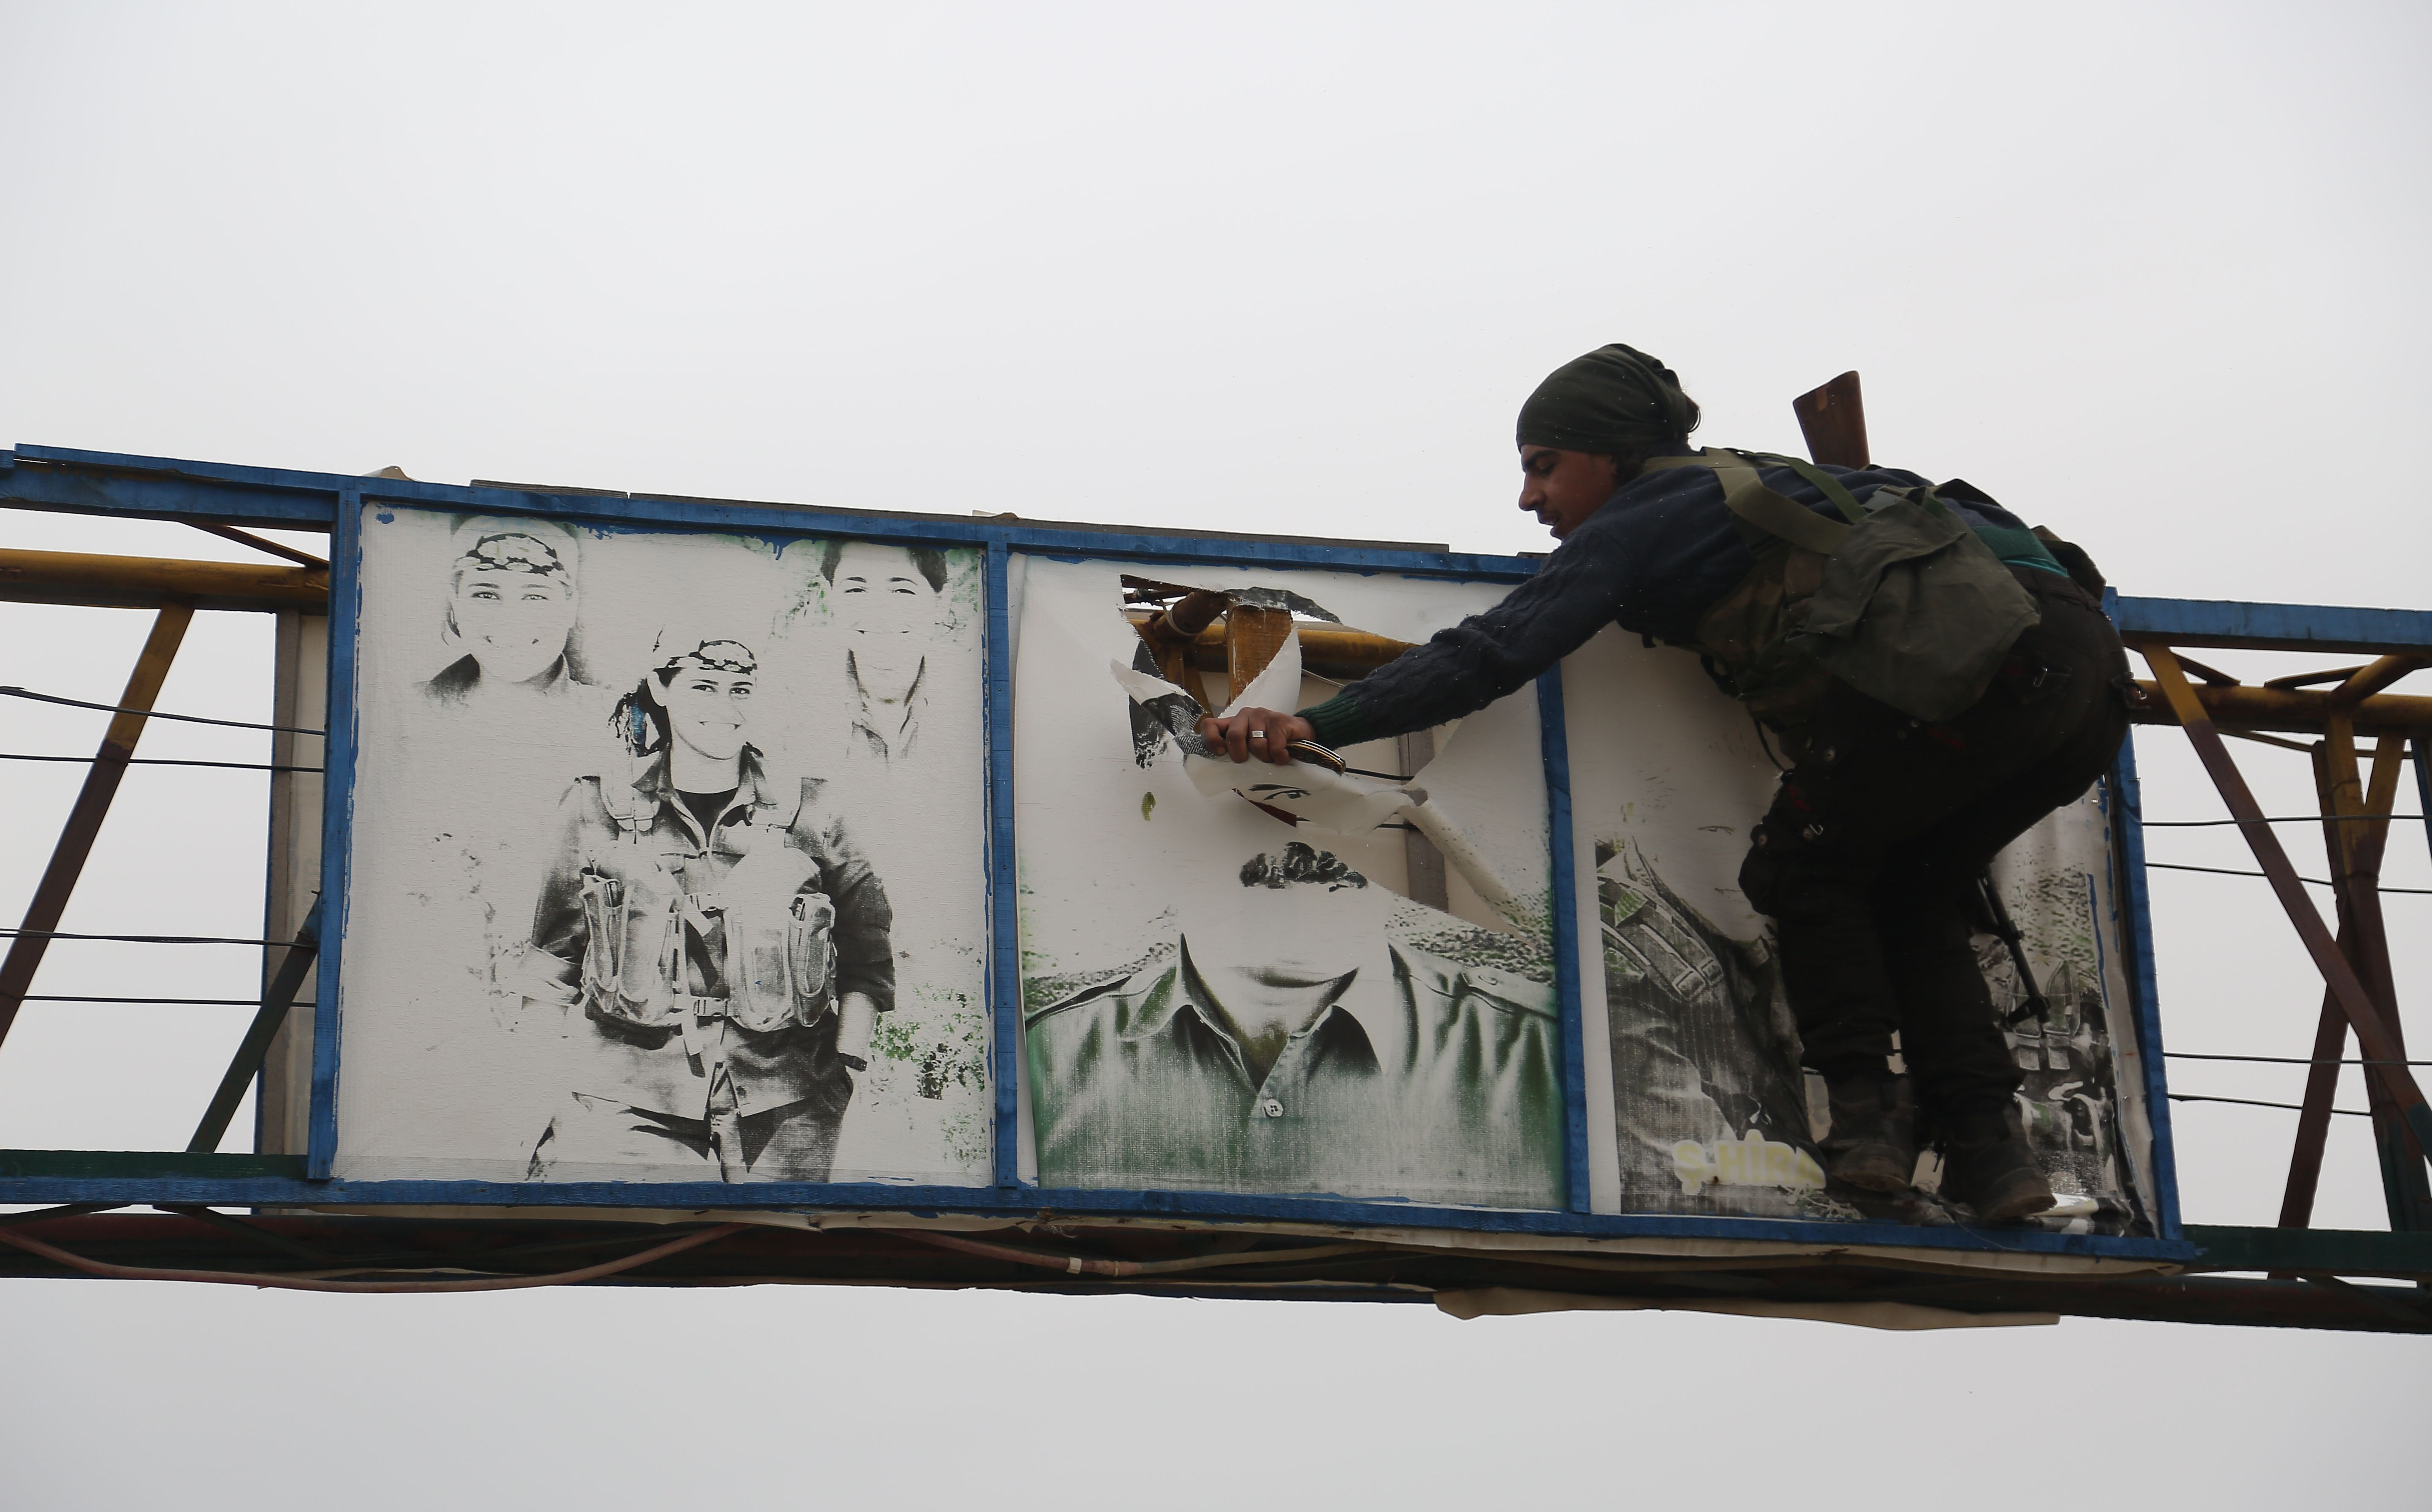 A Turkish-backed Syrian fighter tears down a picture of Abdullah Ocalan in the Hallubi area, north of Afrin, on Thursday. Photo: Nazeer al-Khatib/AFP